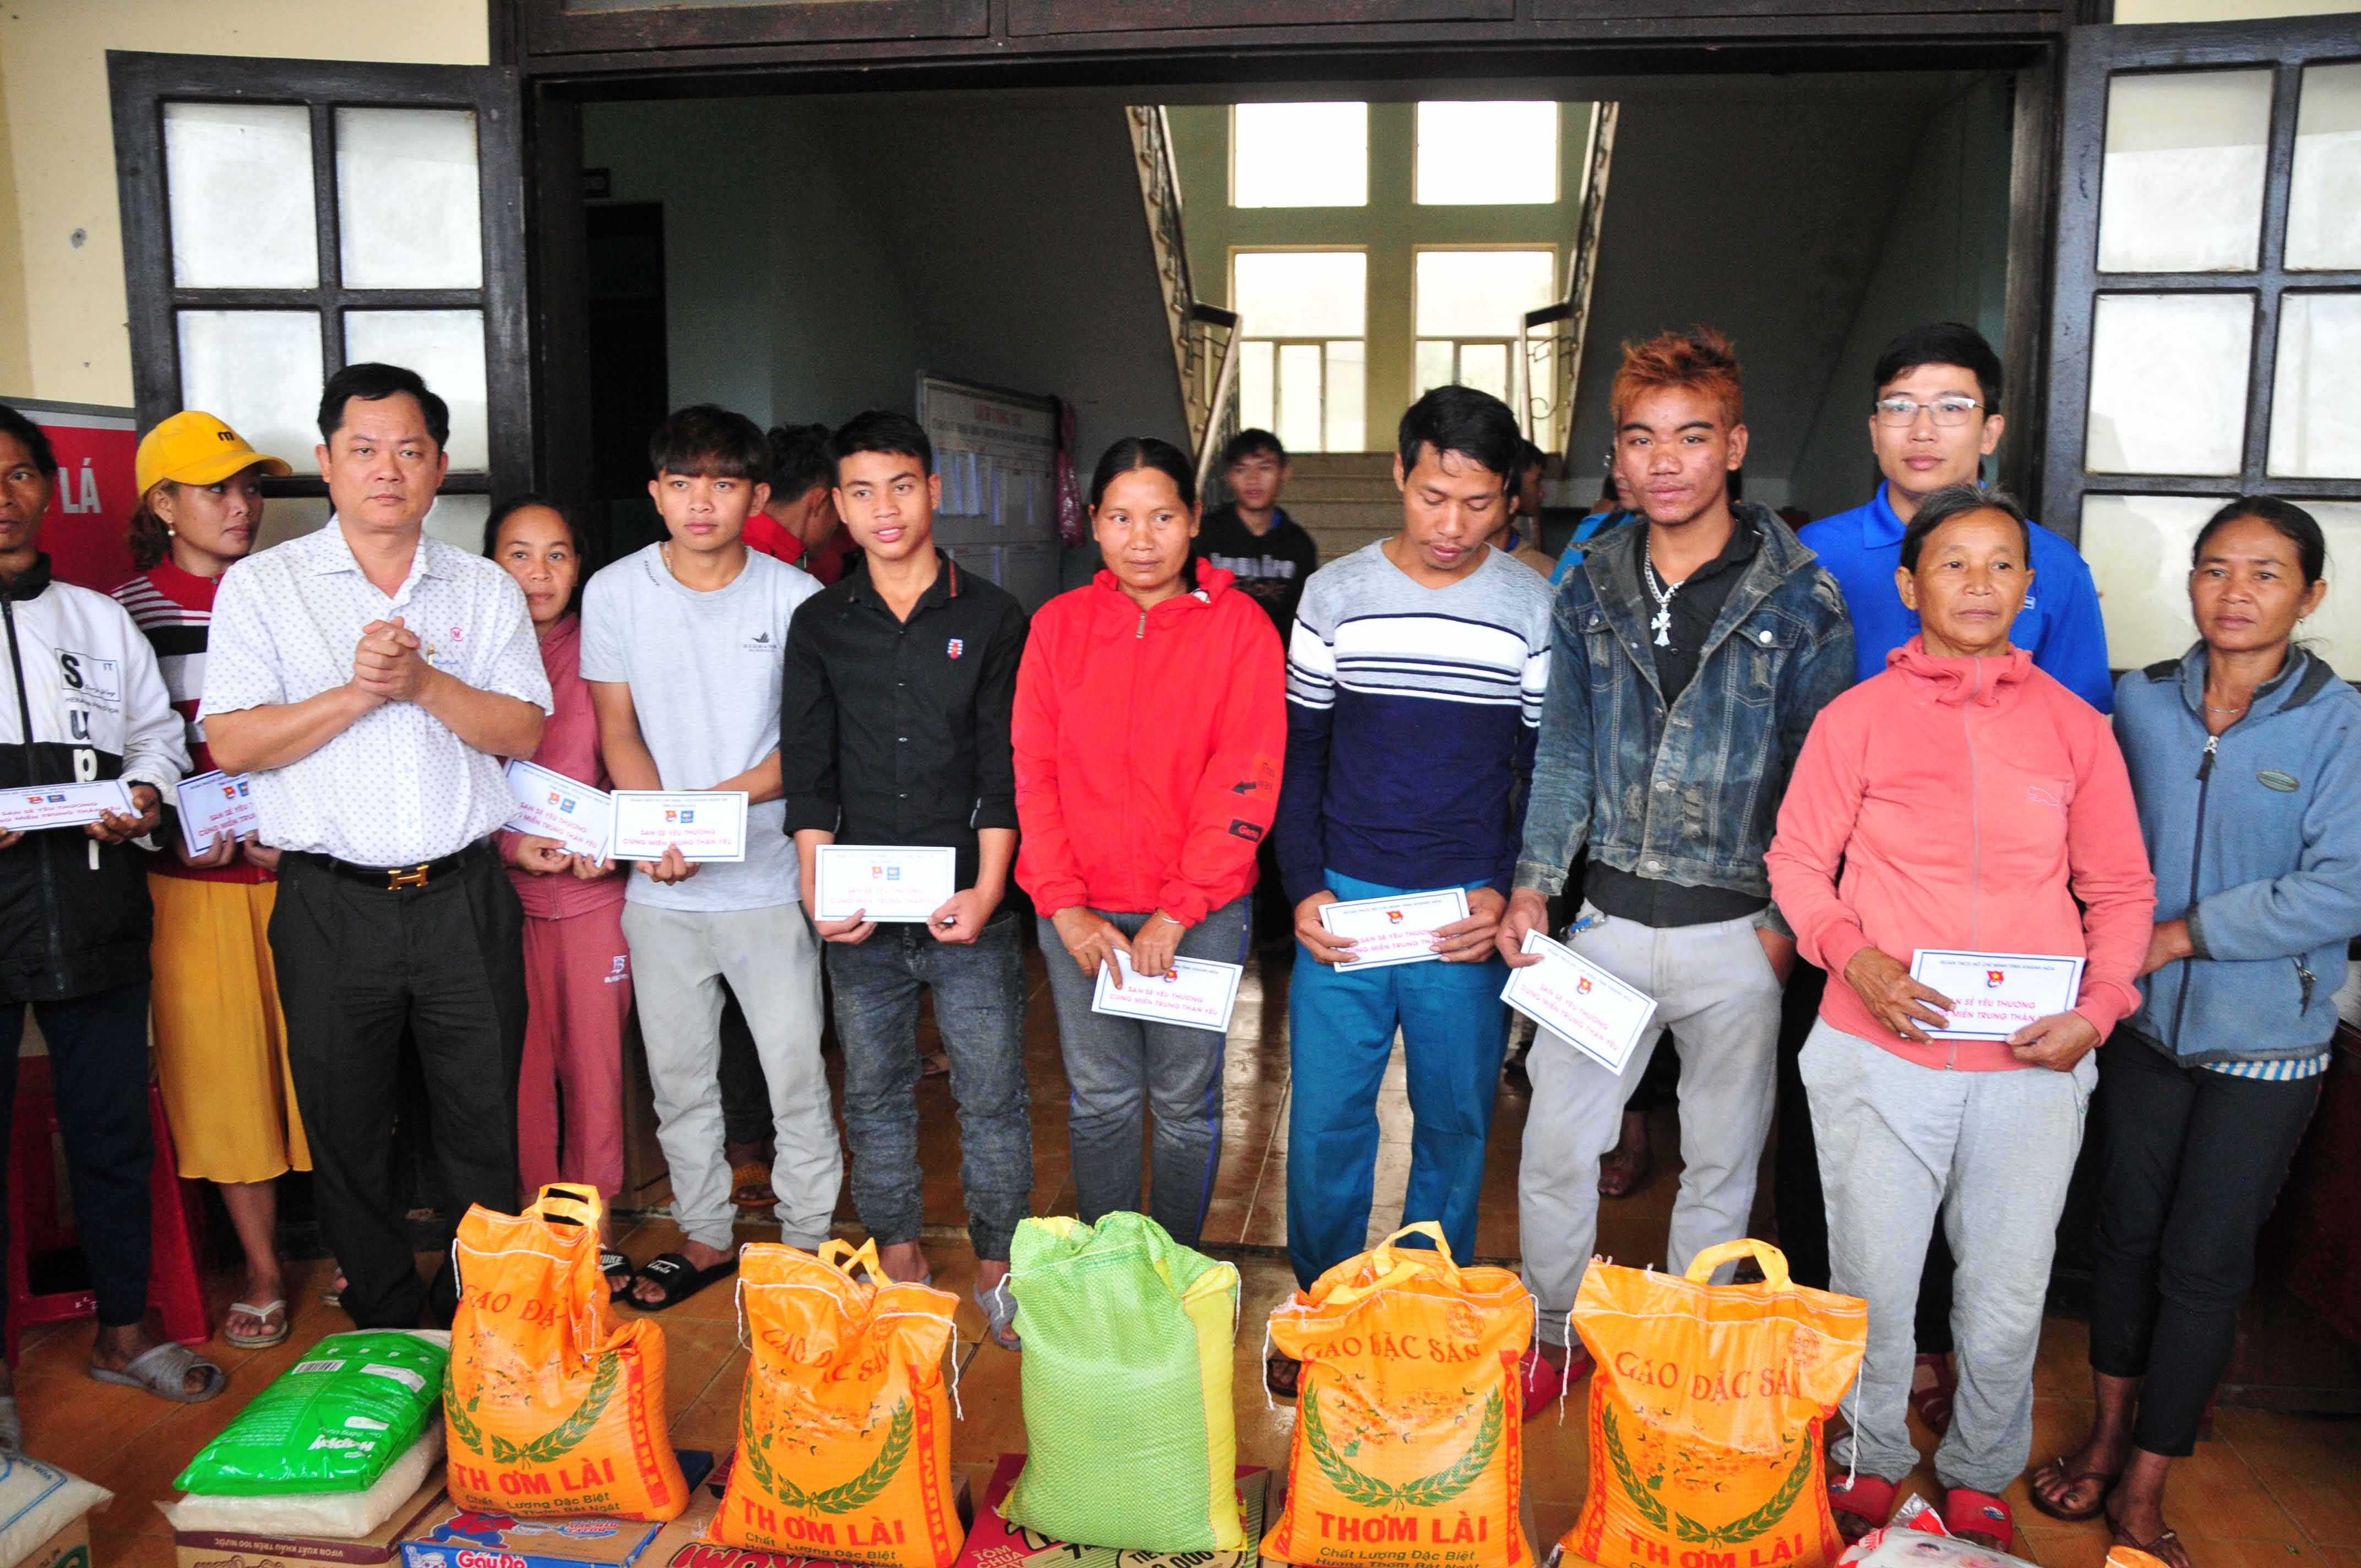 Khanh Hoa Young Entrepreneurs' Association giving gifts to people in Quang Nam Province